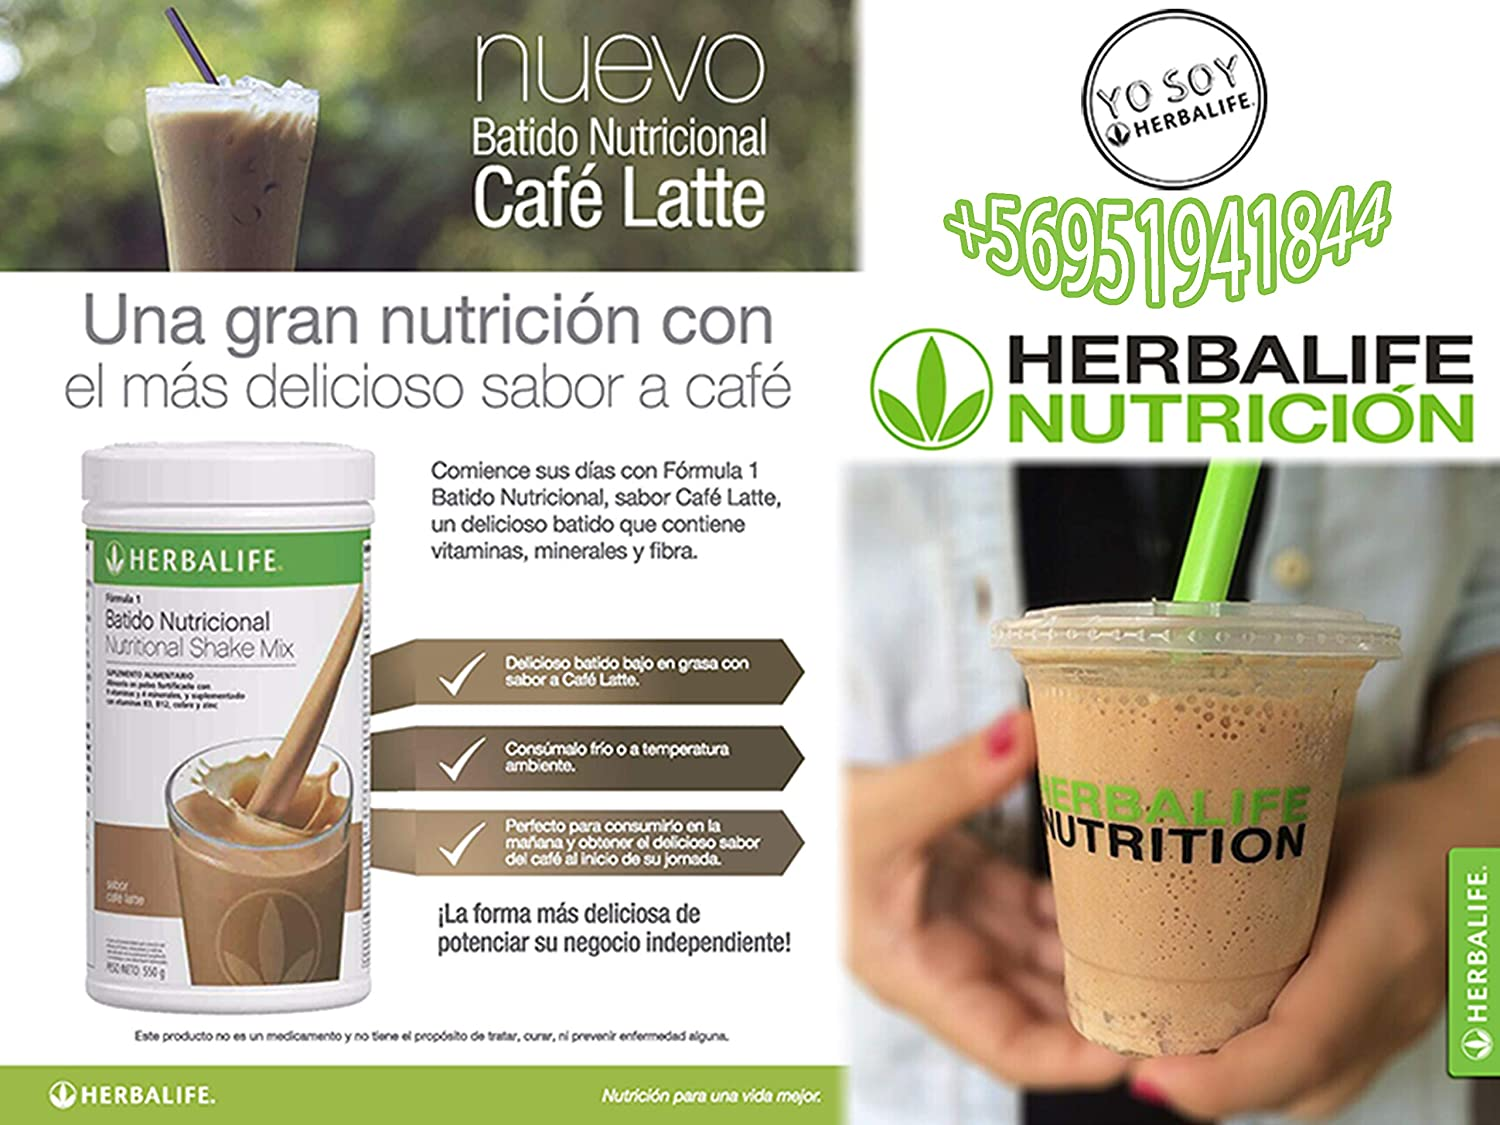 Amazon.com: Herbalife Formula 1 Healthy Meal Nutritional Shake Mix: Café Latte 780 g: Health & Personal Care